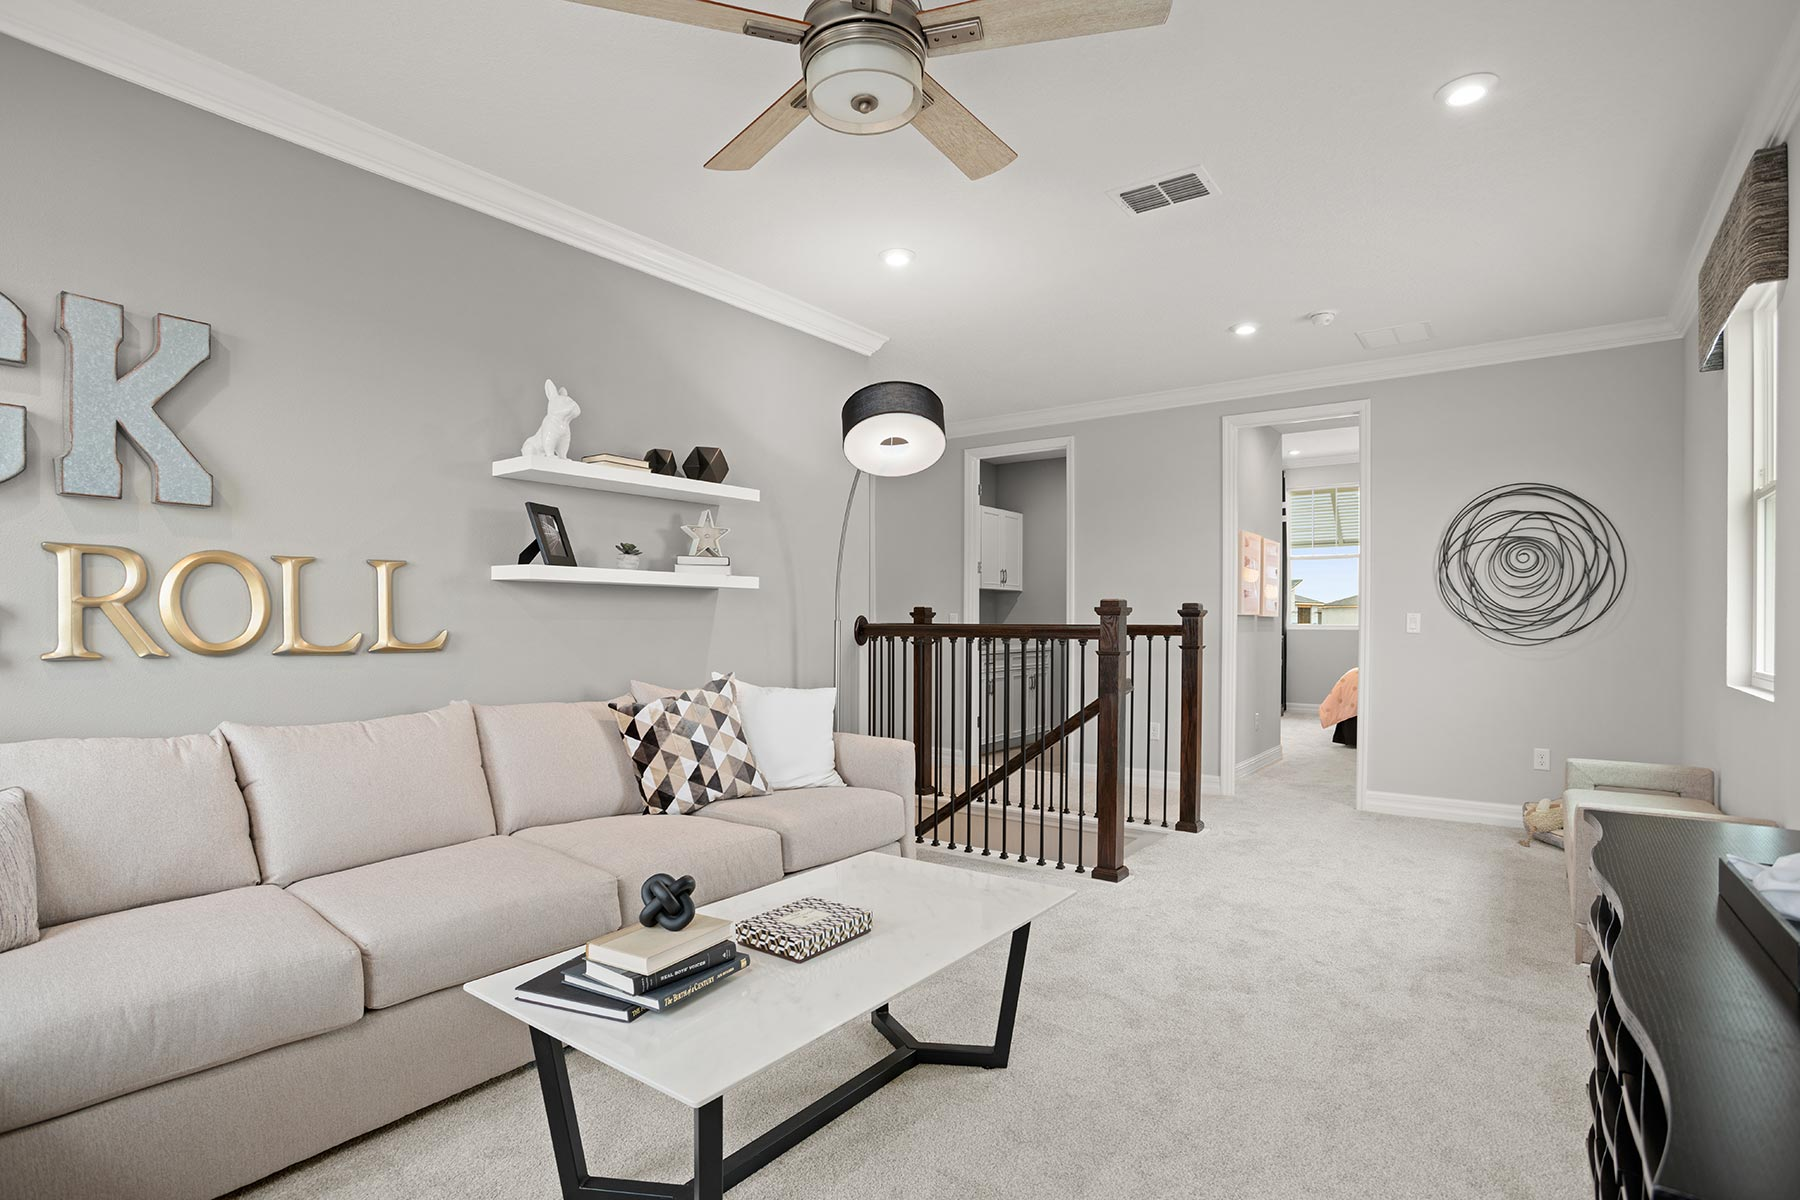 Winthrop Plan Loft at Tapestry in Kissimmee Florida by Mattamy Homes